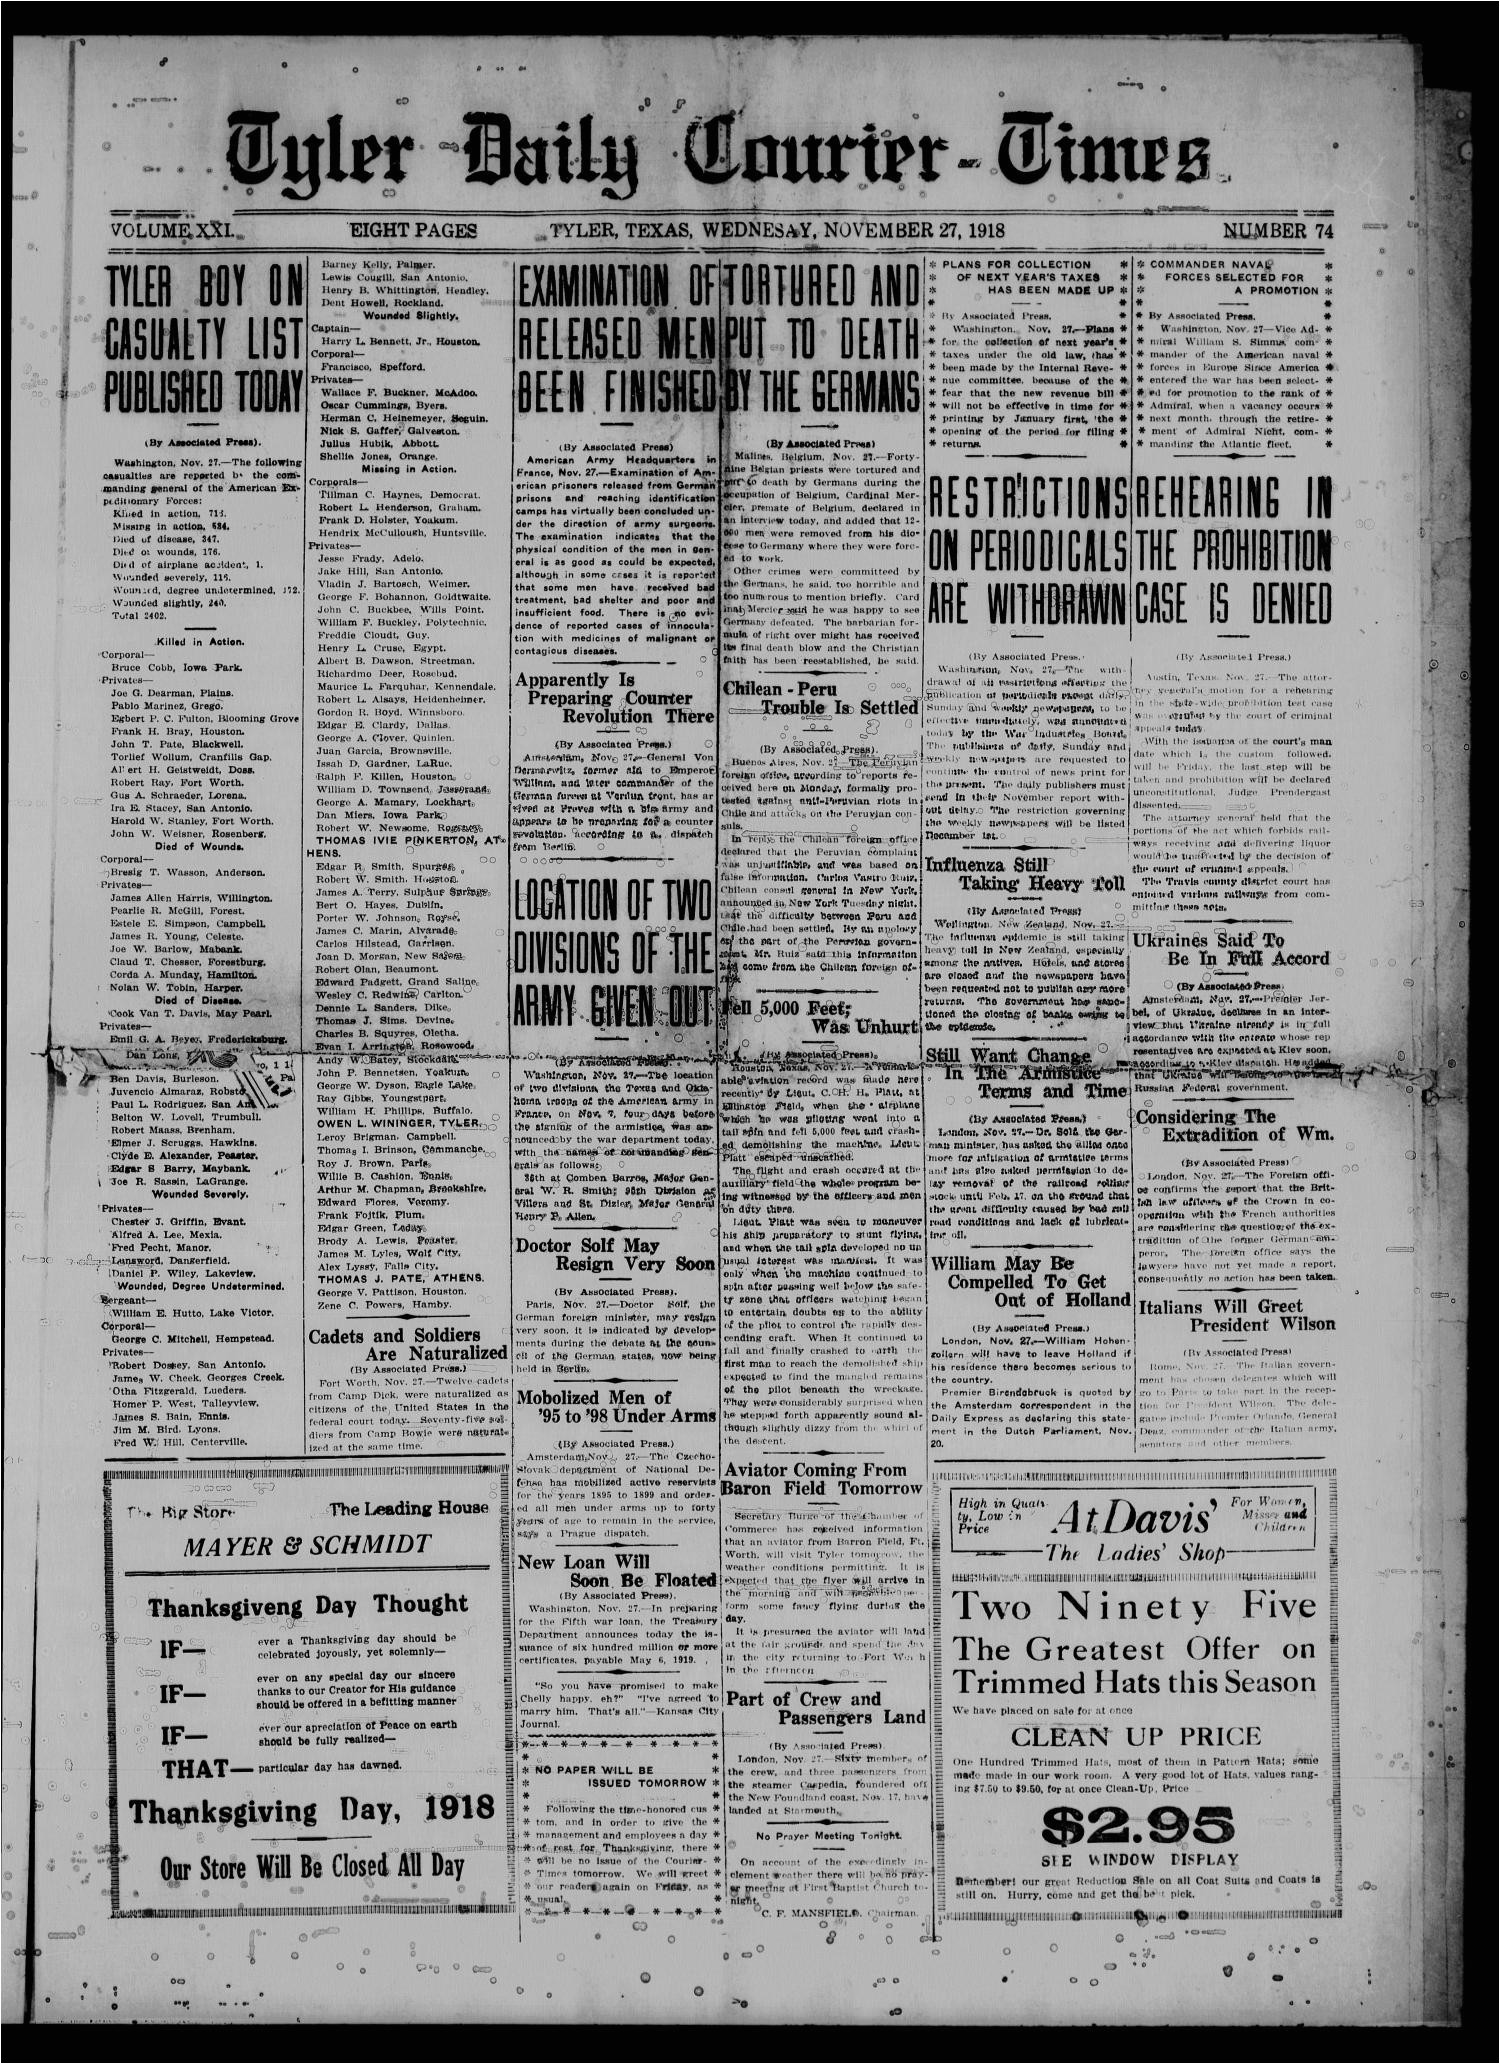 the tyler daily courier times tyler tex vol 21 no 74 ed 1 wednesday november 27 1918 page 1 of 4 the portal to texas history